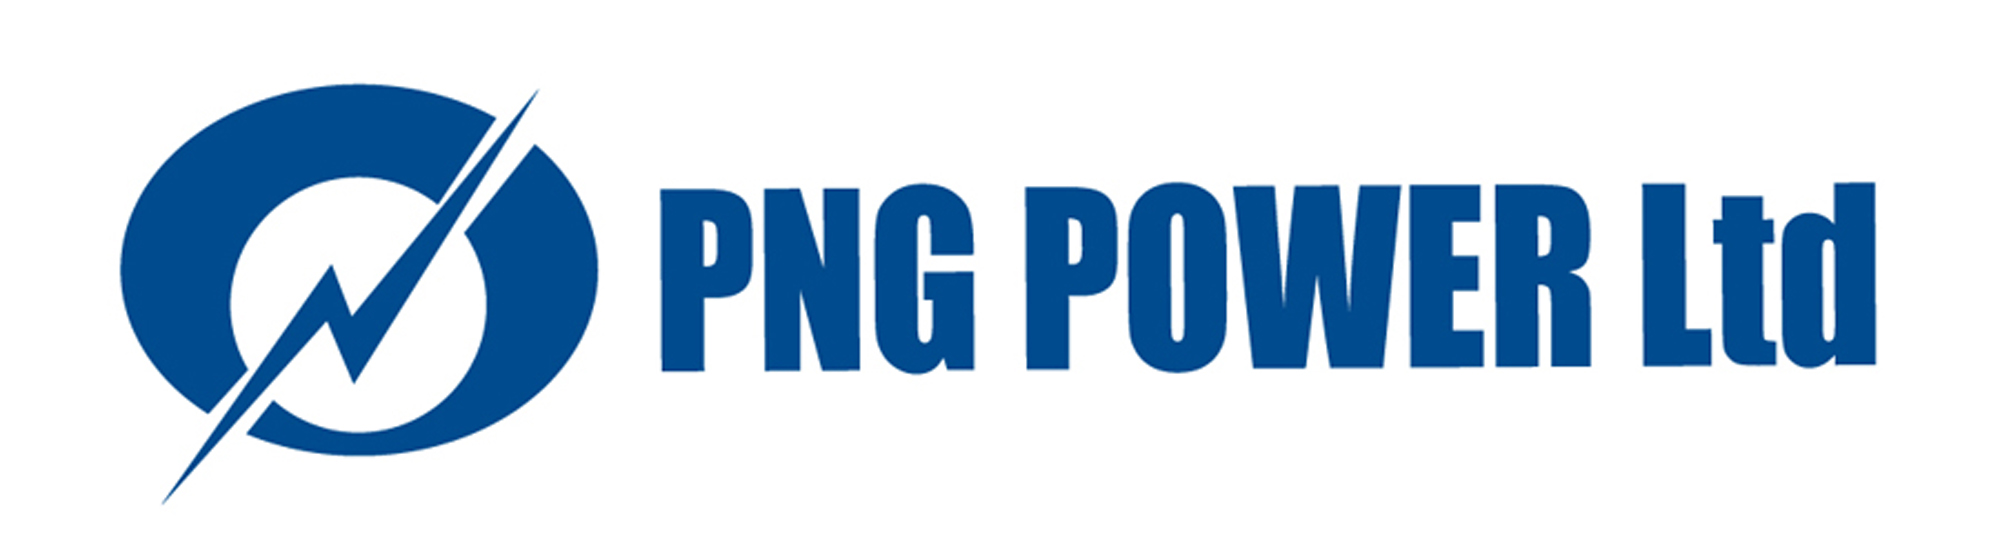 Vandals to be prosecuted by PNG Power Ltd